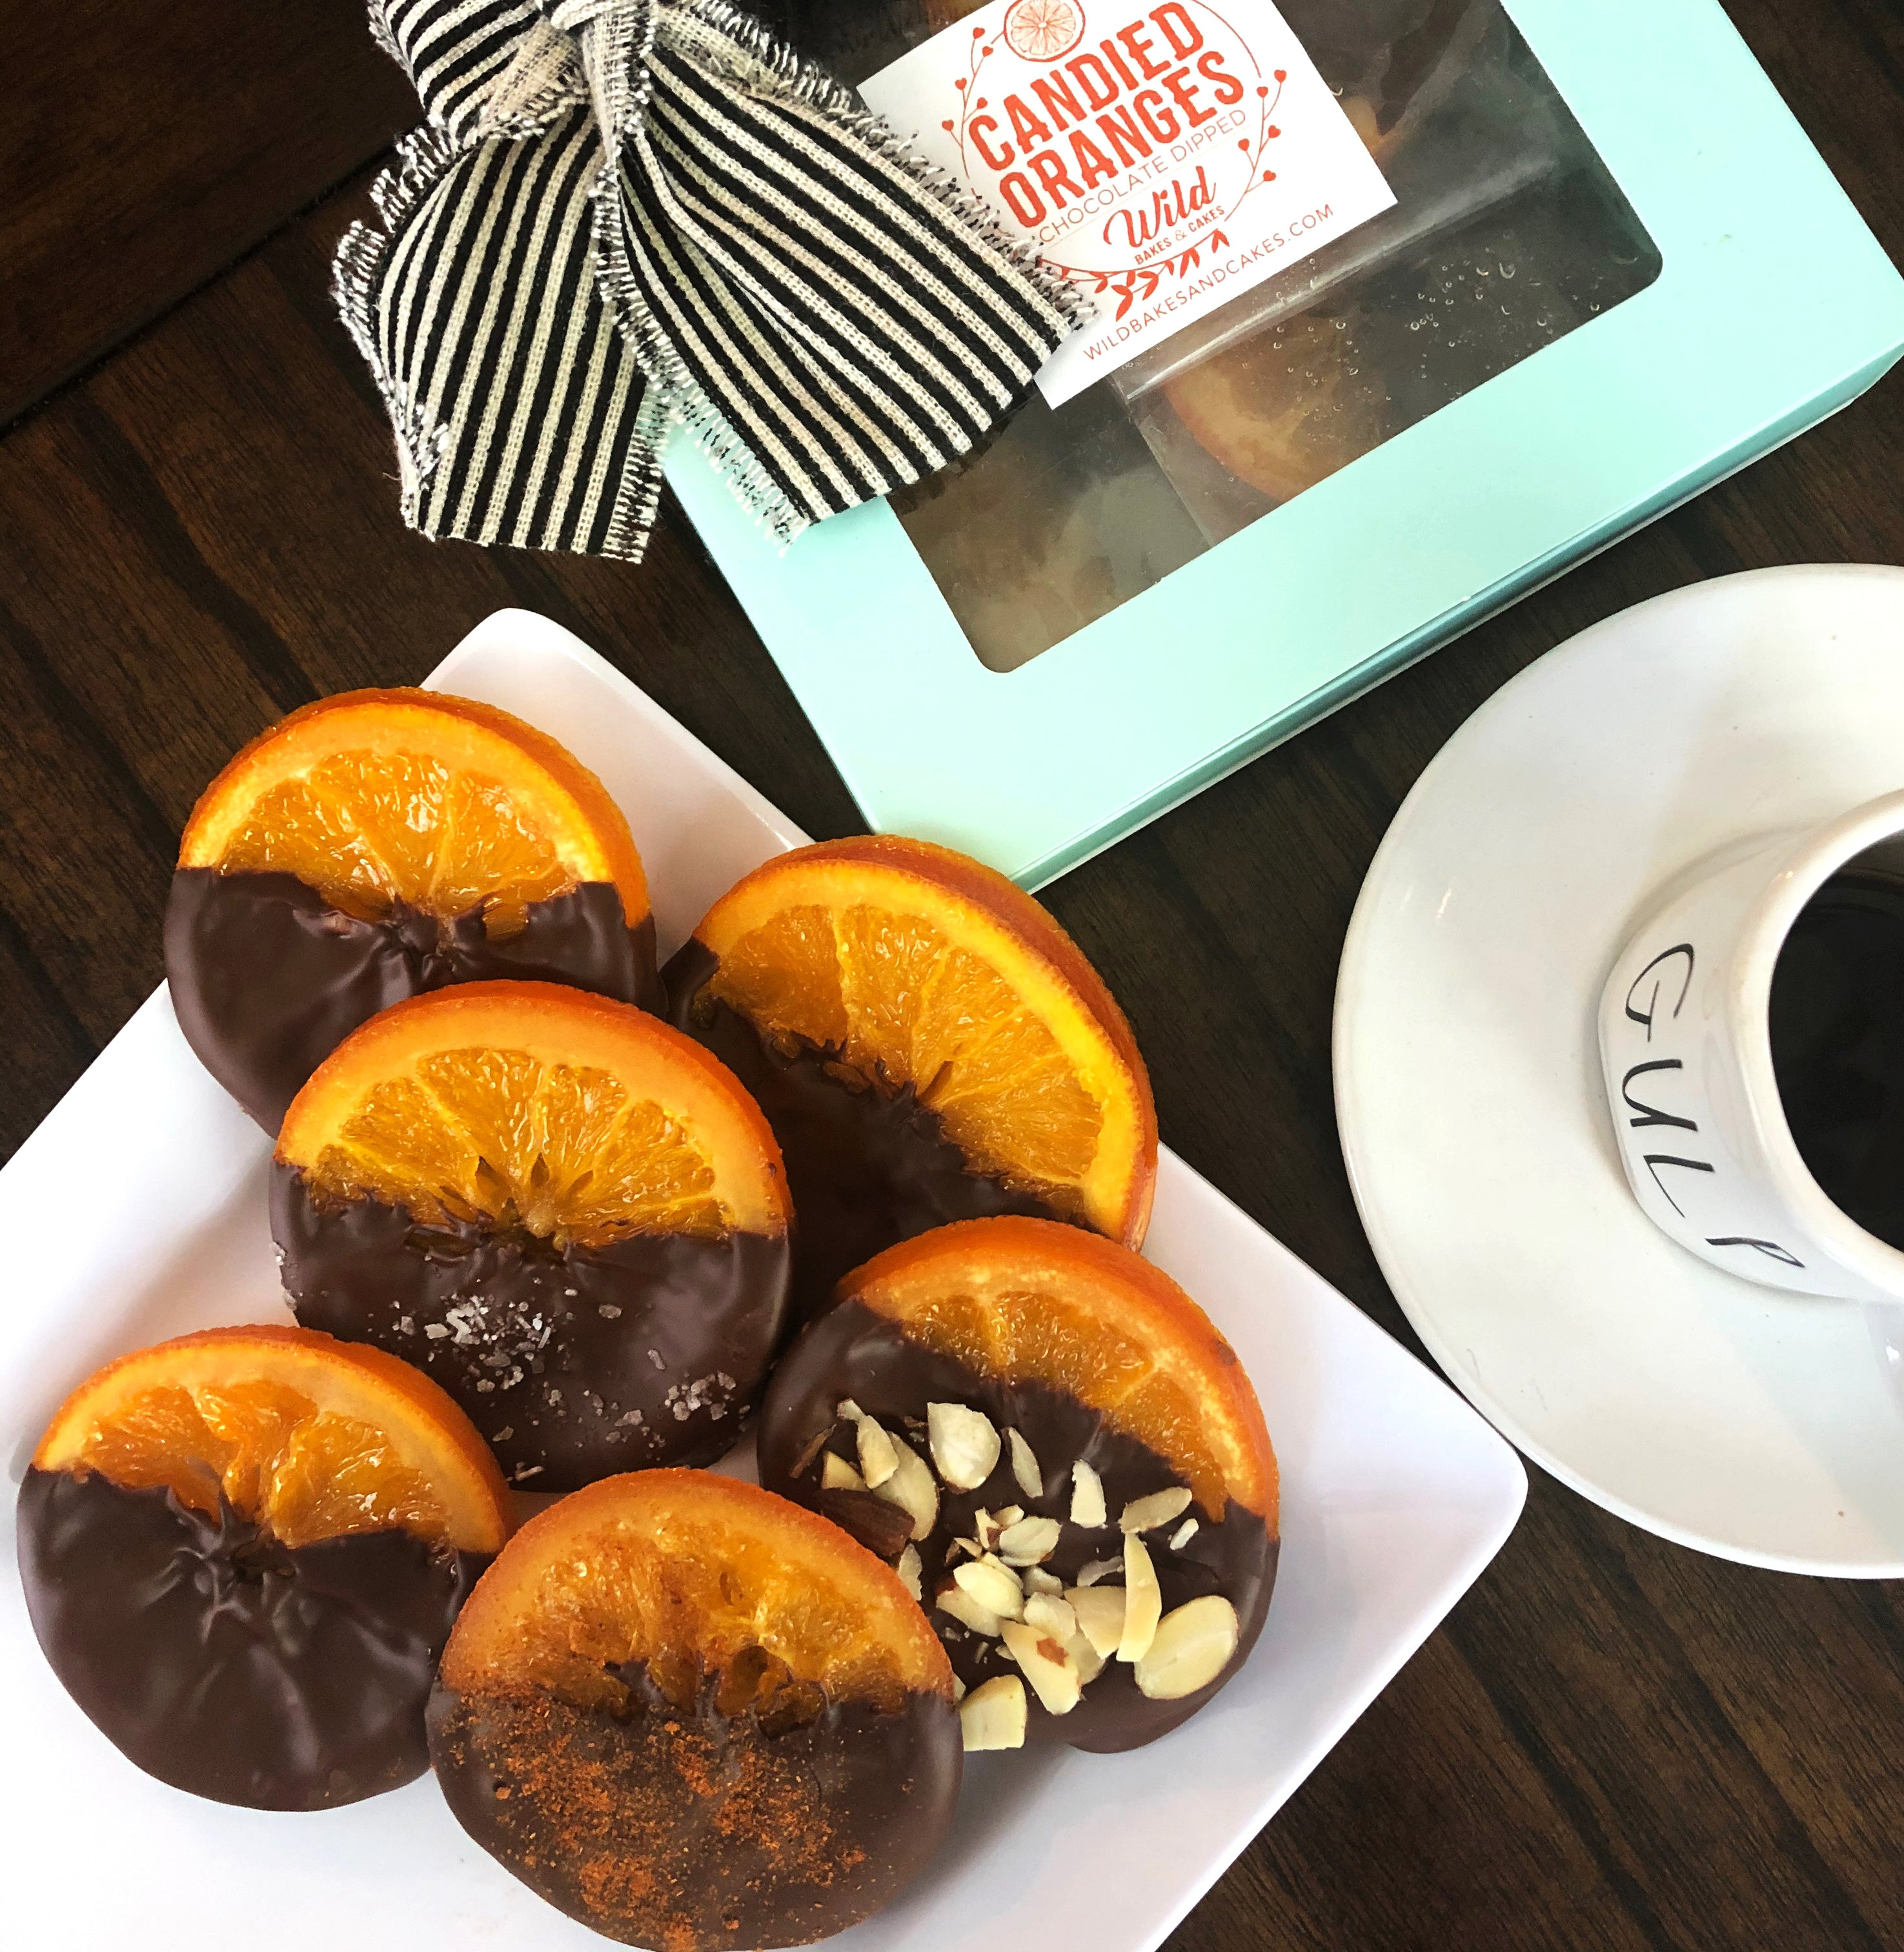 Assorted Gourmet Gift Box - Candied Orange Slices Dipped in Chocolate